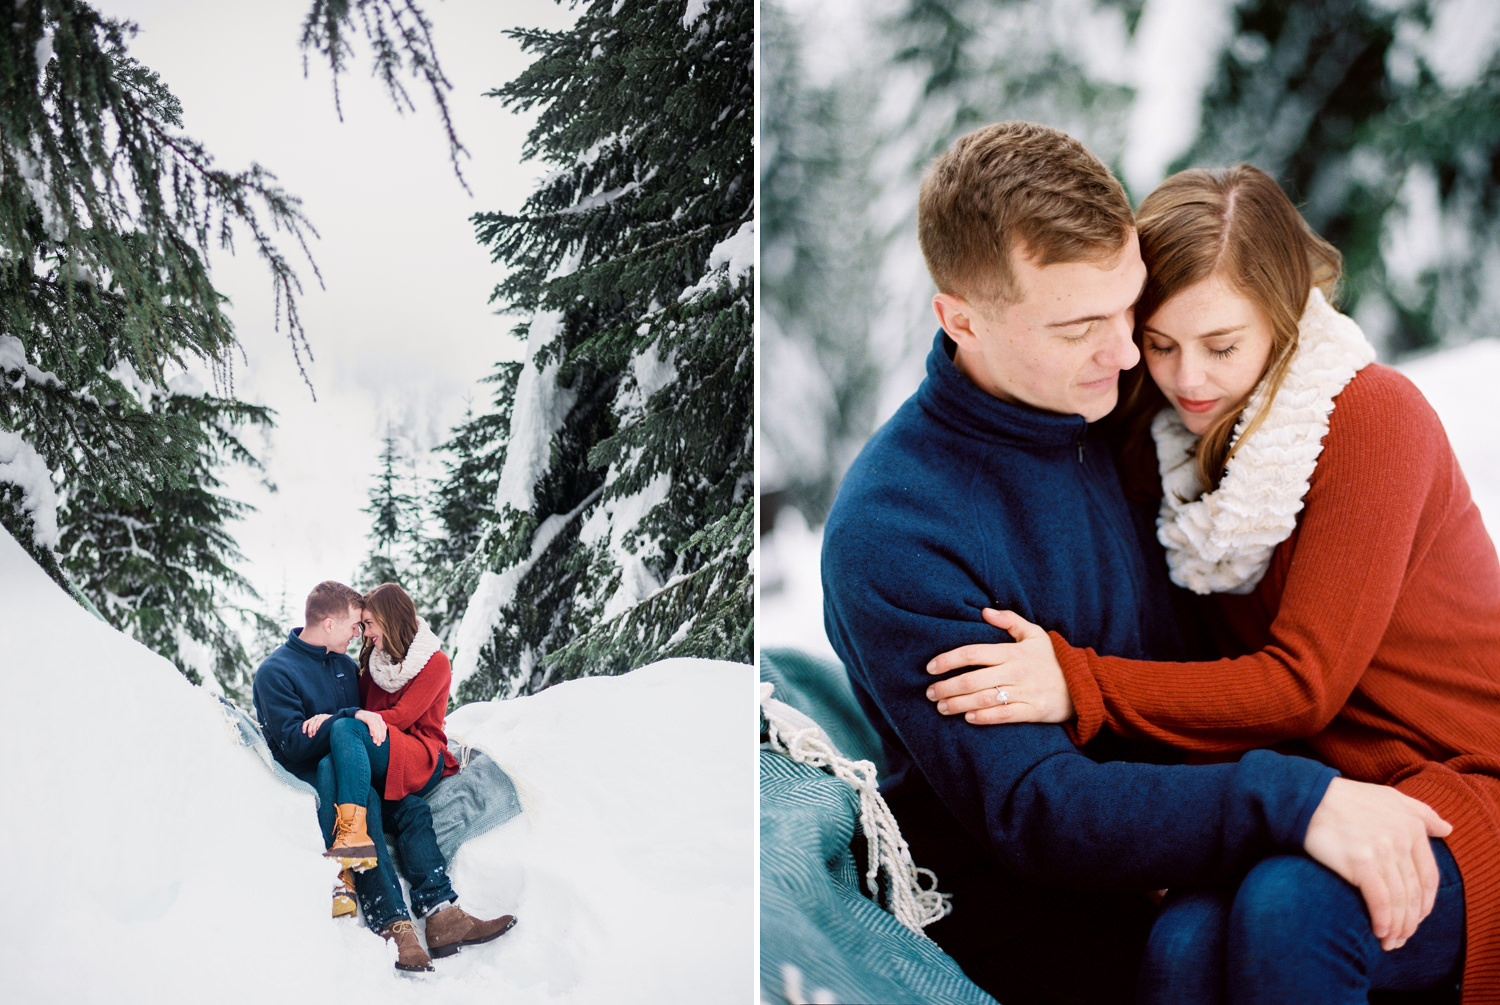 036-snoqualmie-mountain-engagement-session-seattle-film-wedding-photographer-ryan-flynn.jpg